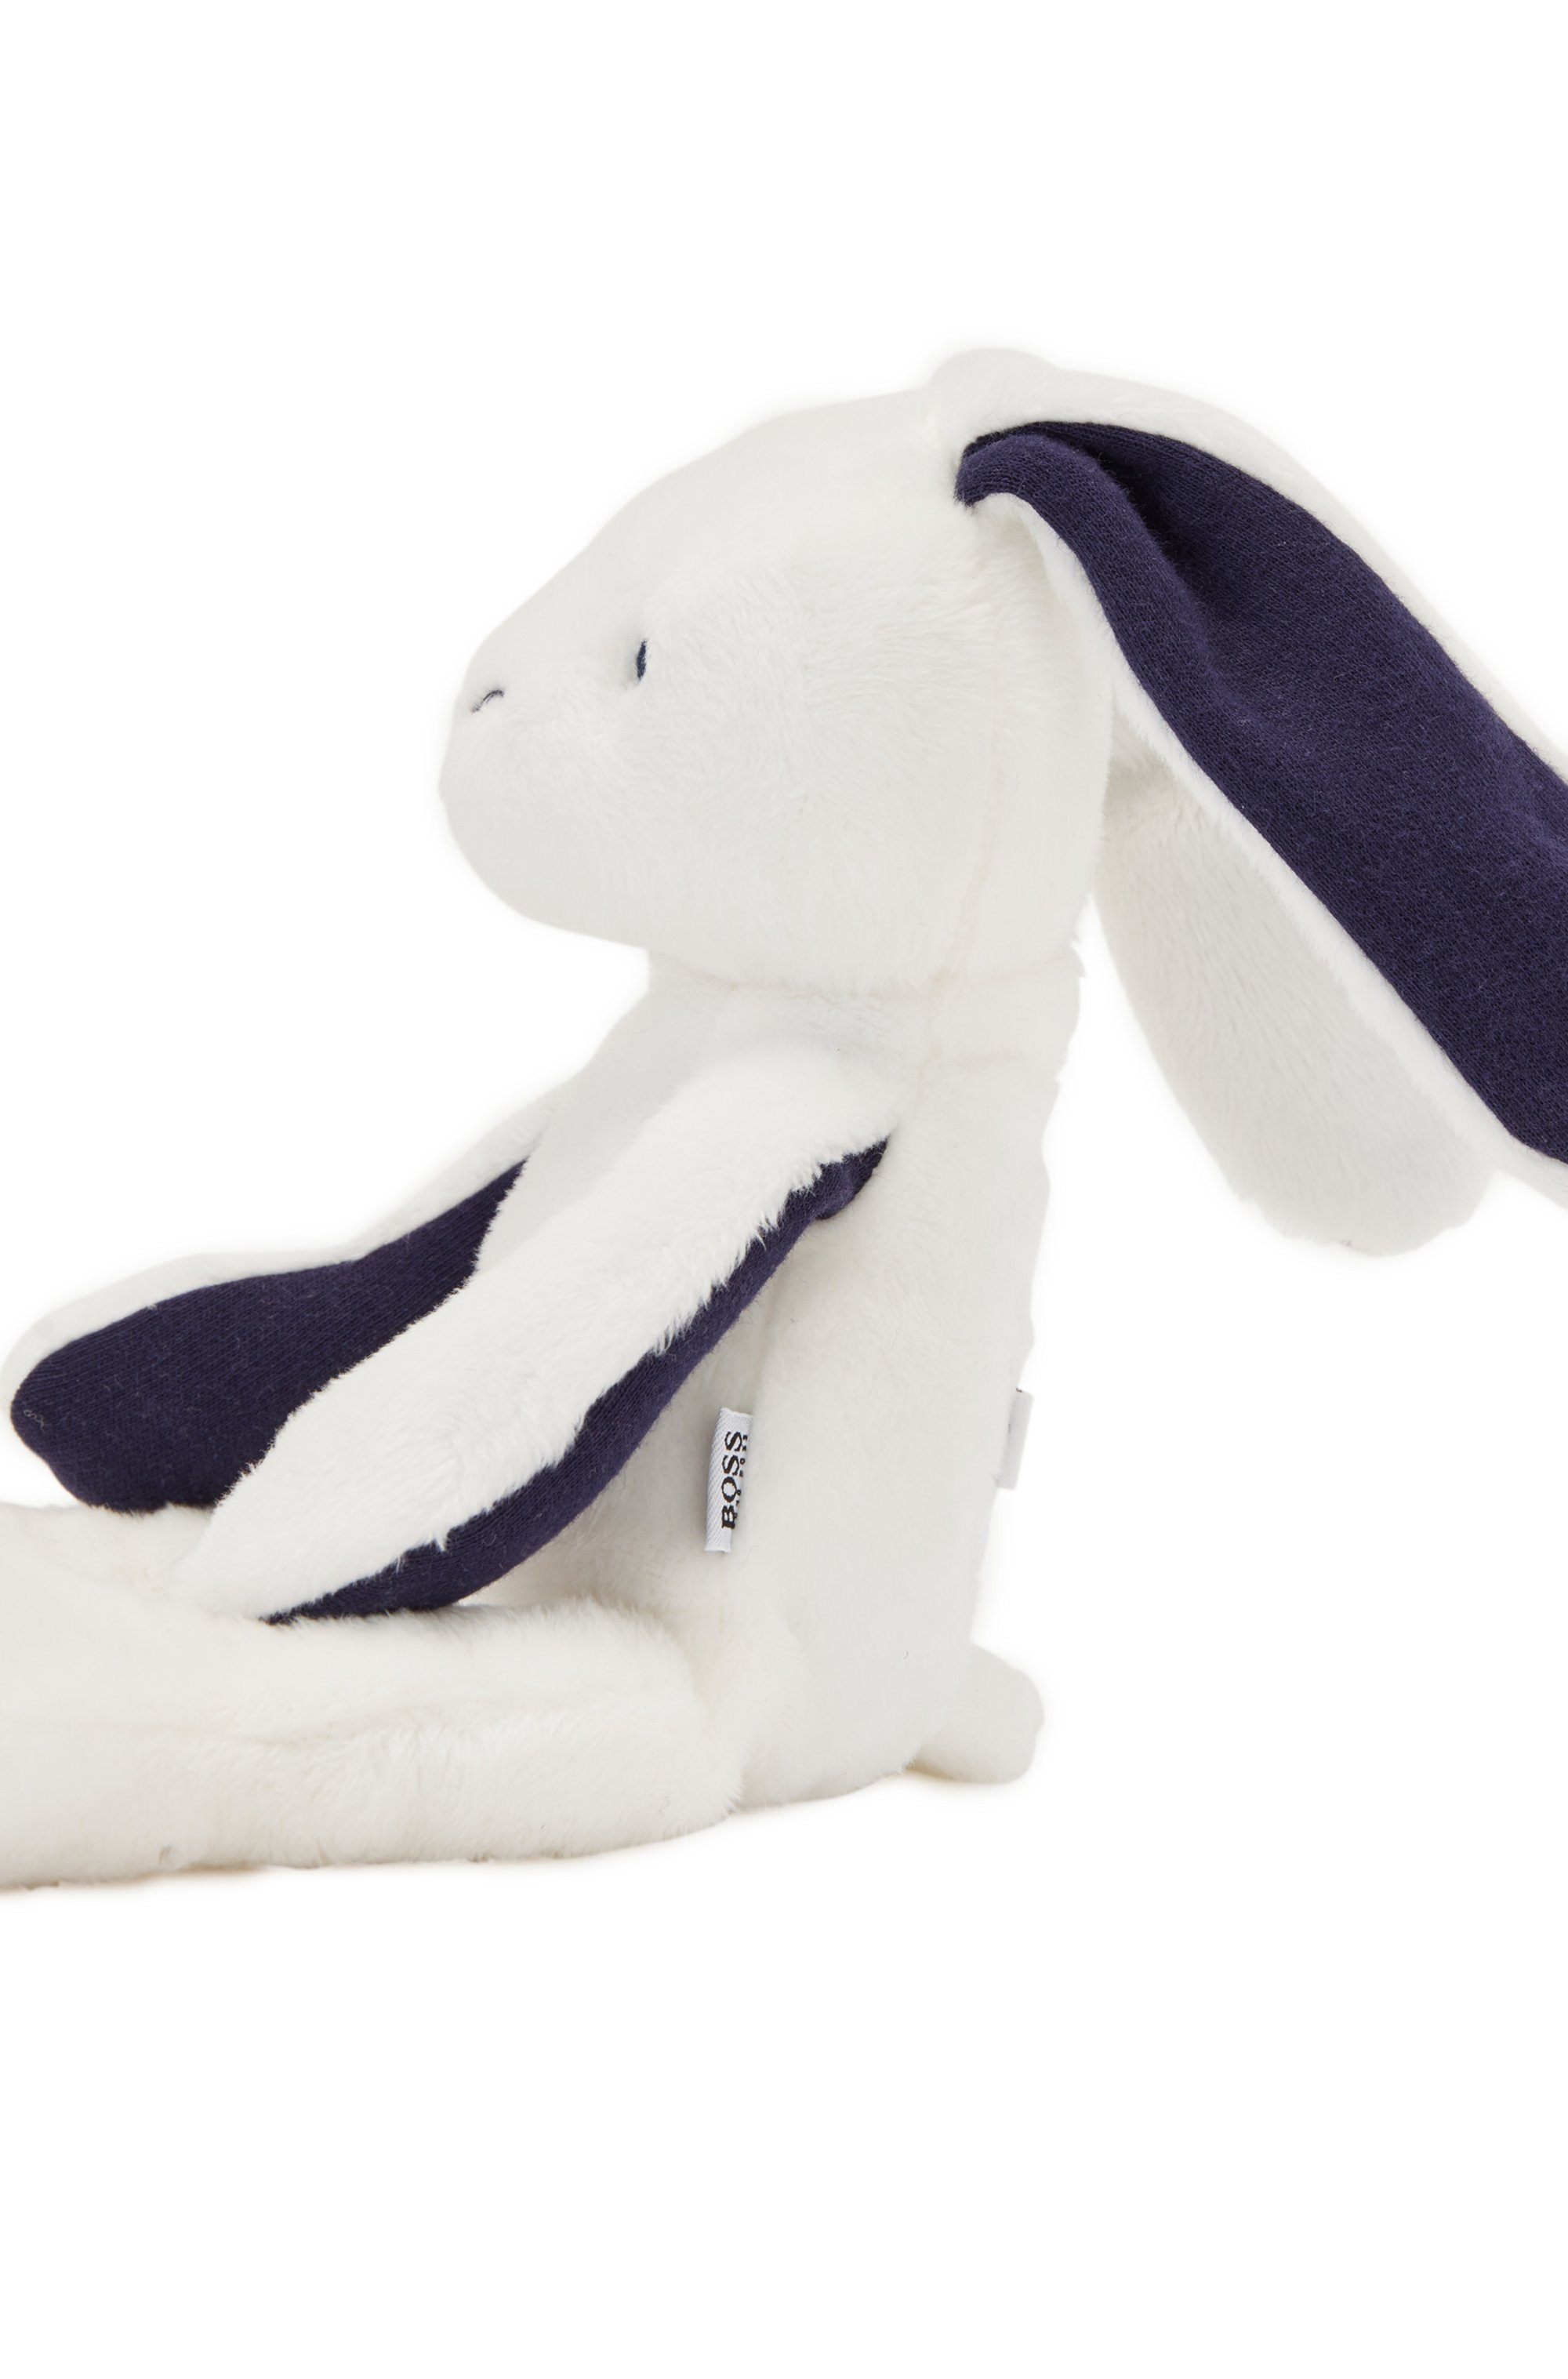 Baby bunny toy in faux fur with printed logos